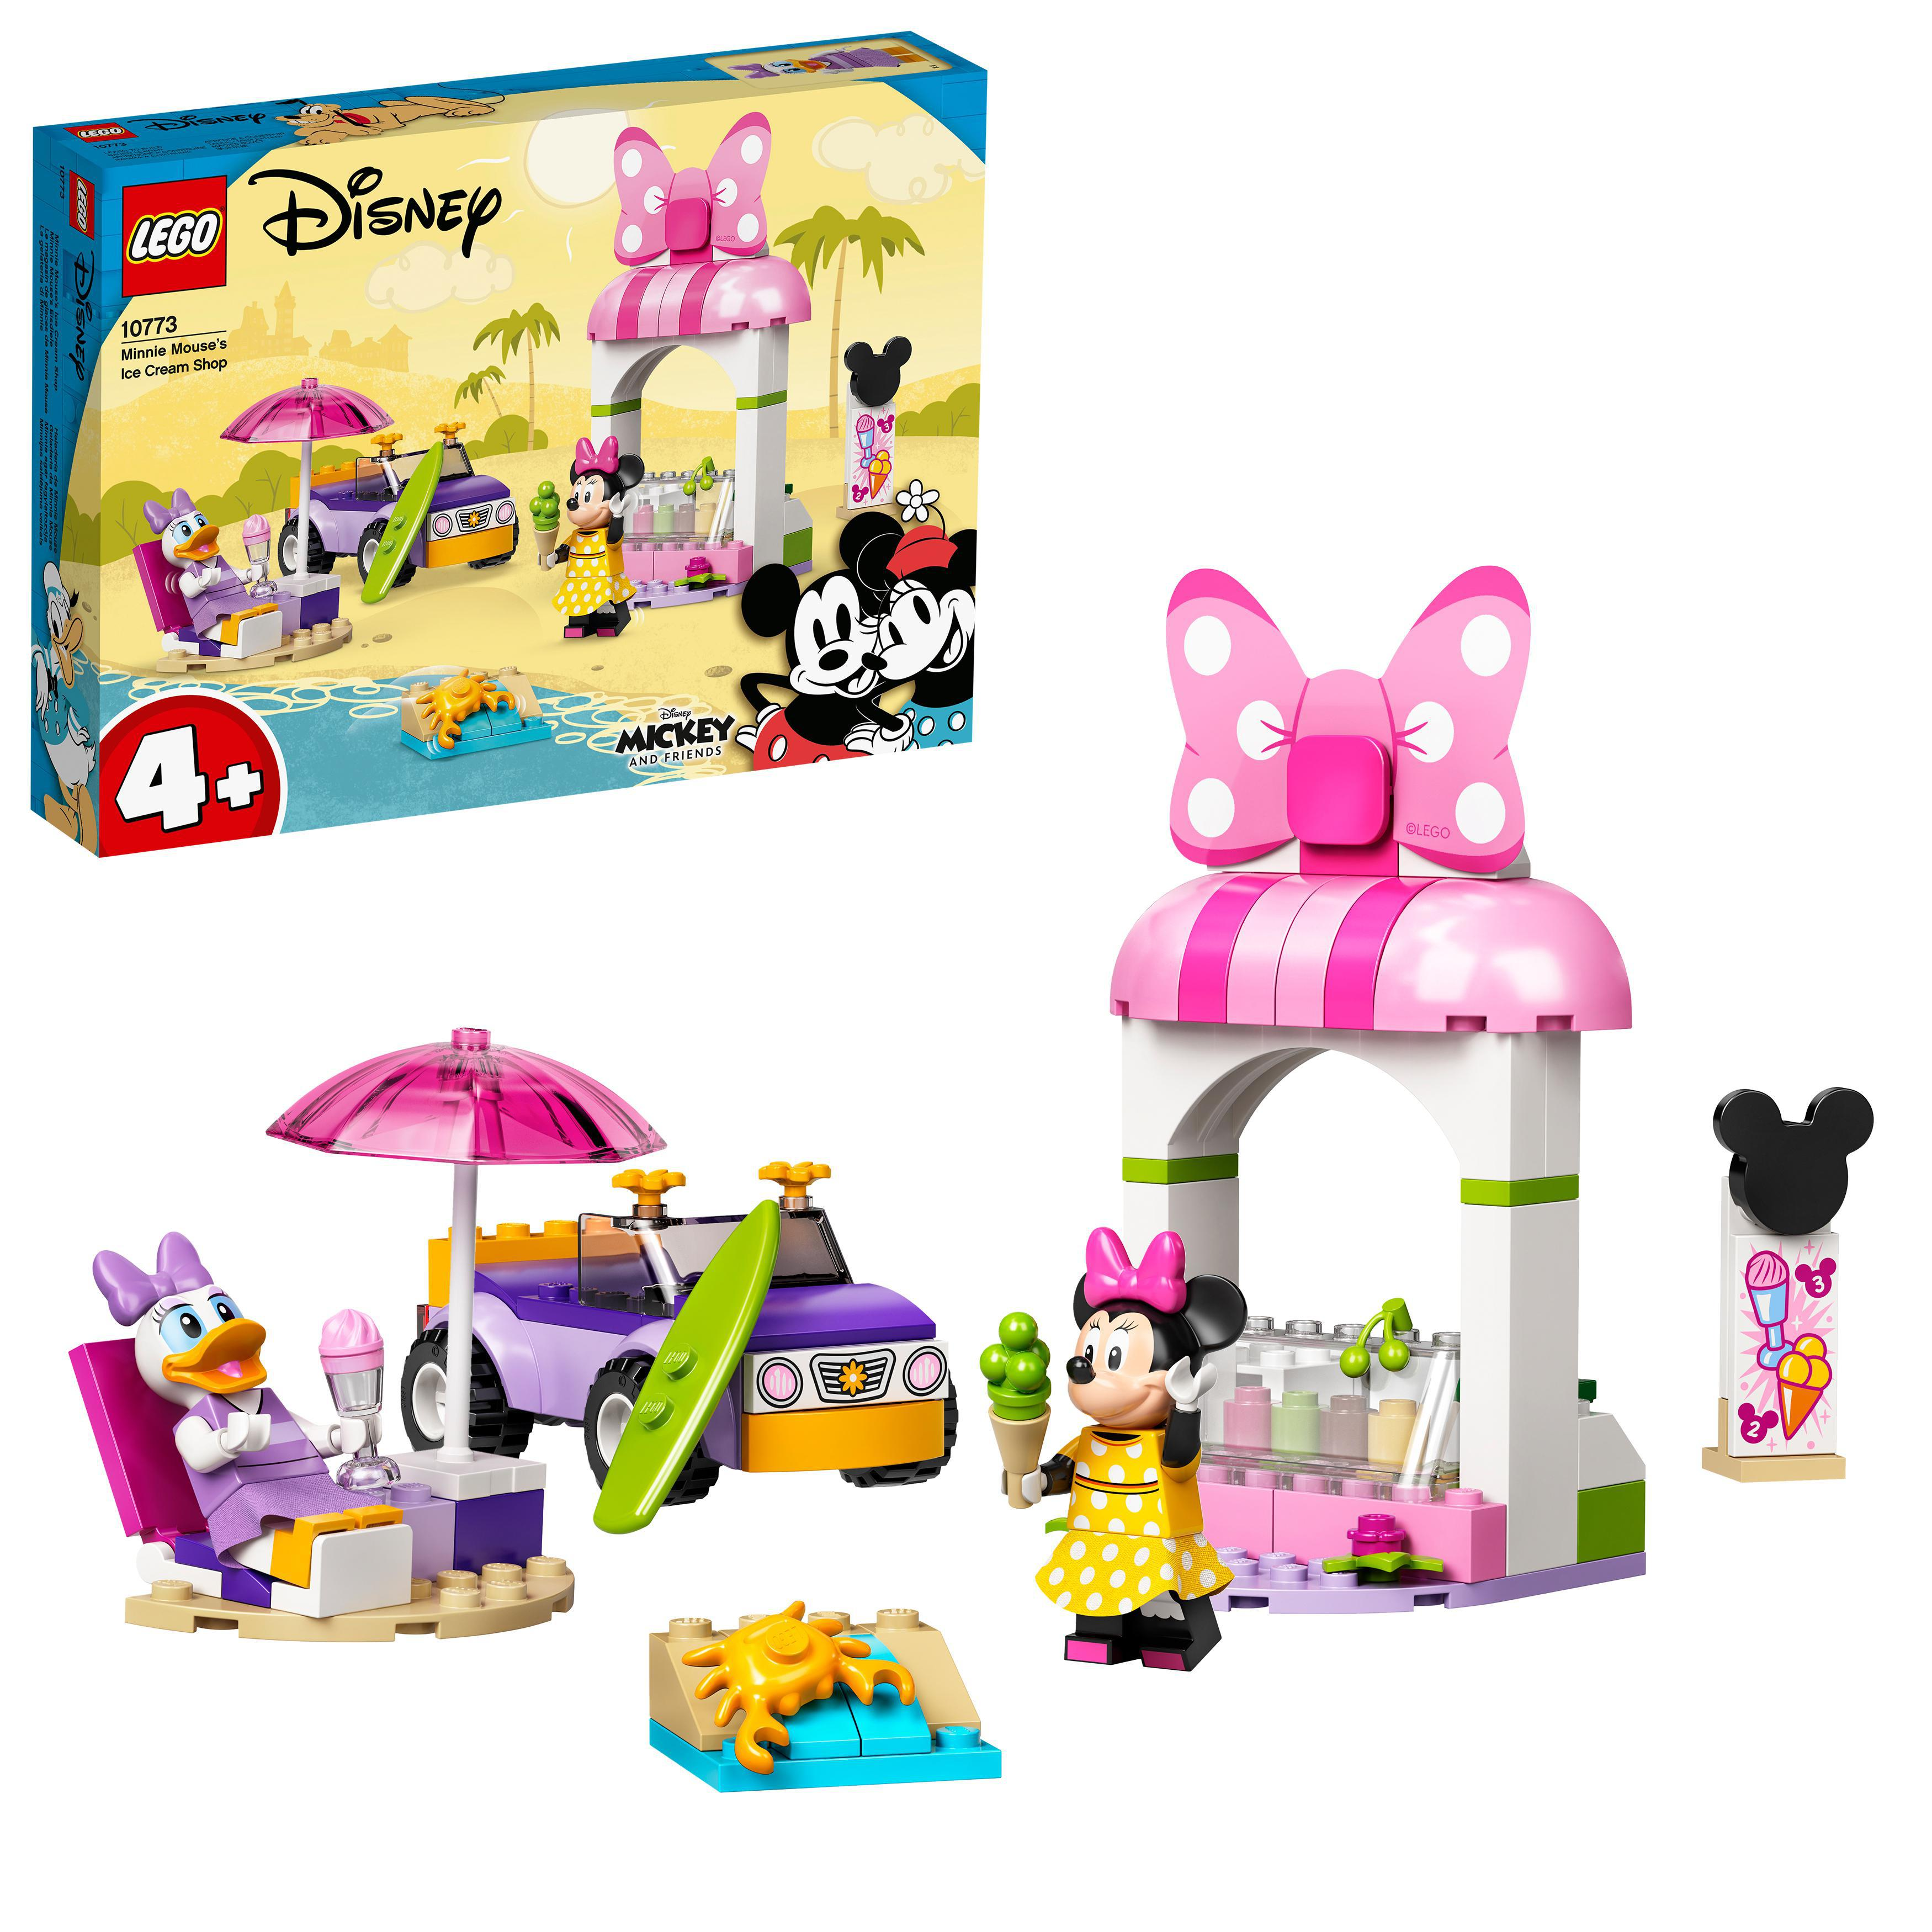 LEGO Mickey Mouse - Minnie Mouse's Ice Cream Shop (10773)